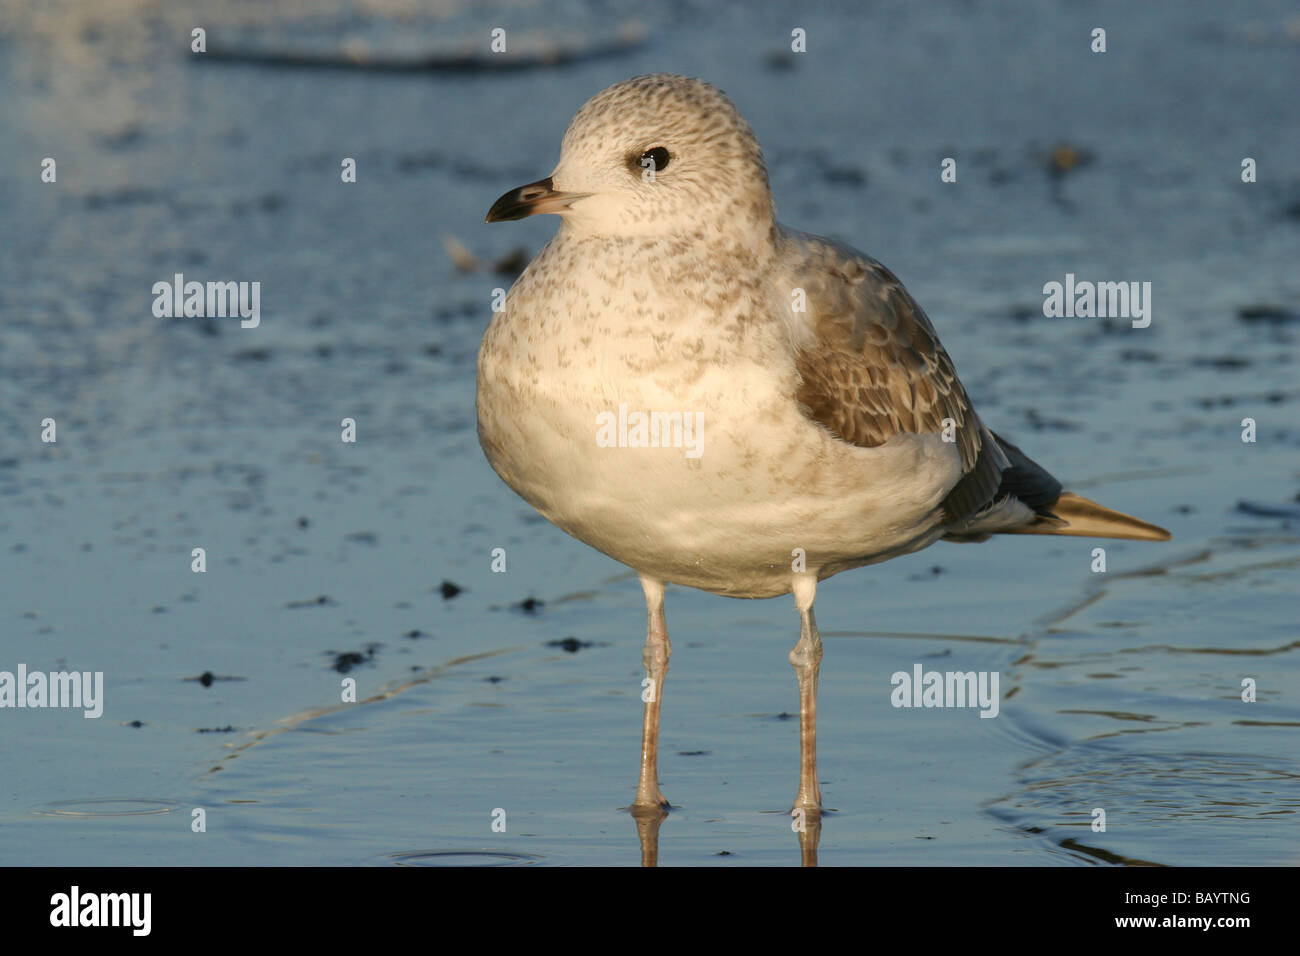 First winter Common Gull (Larus canus) standing on a frozen pond/lake - Stock Image